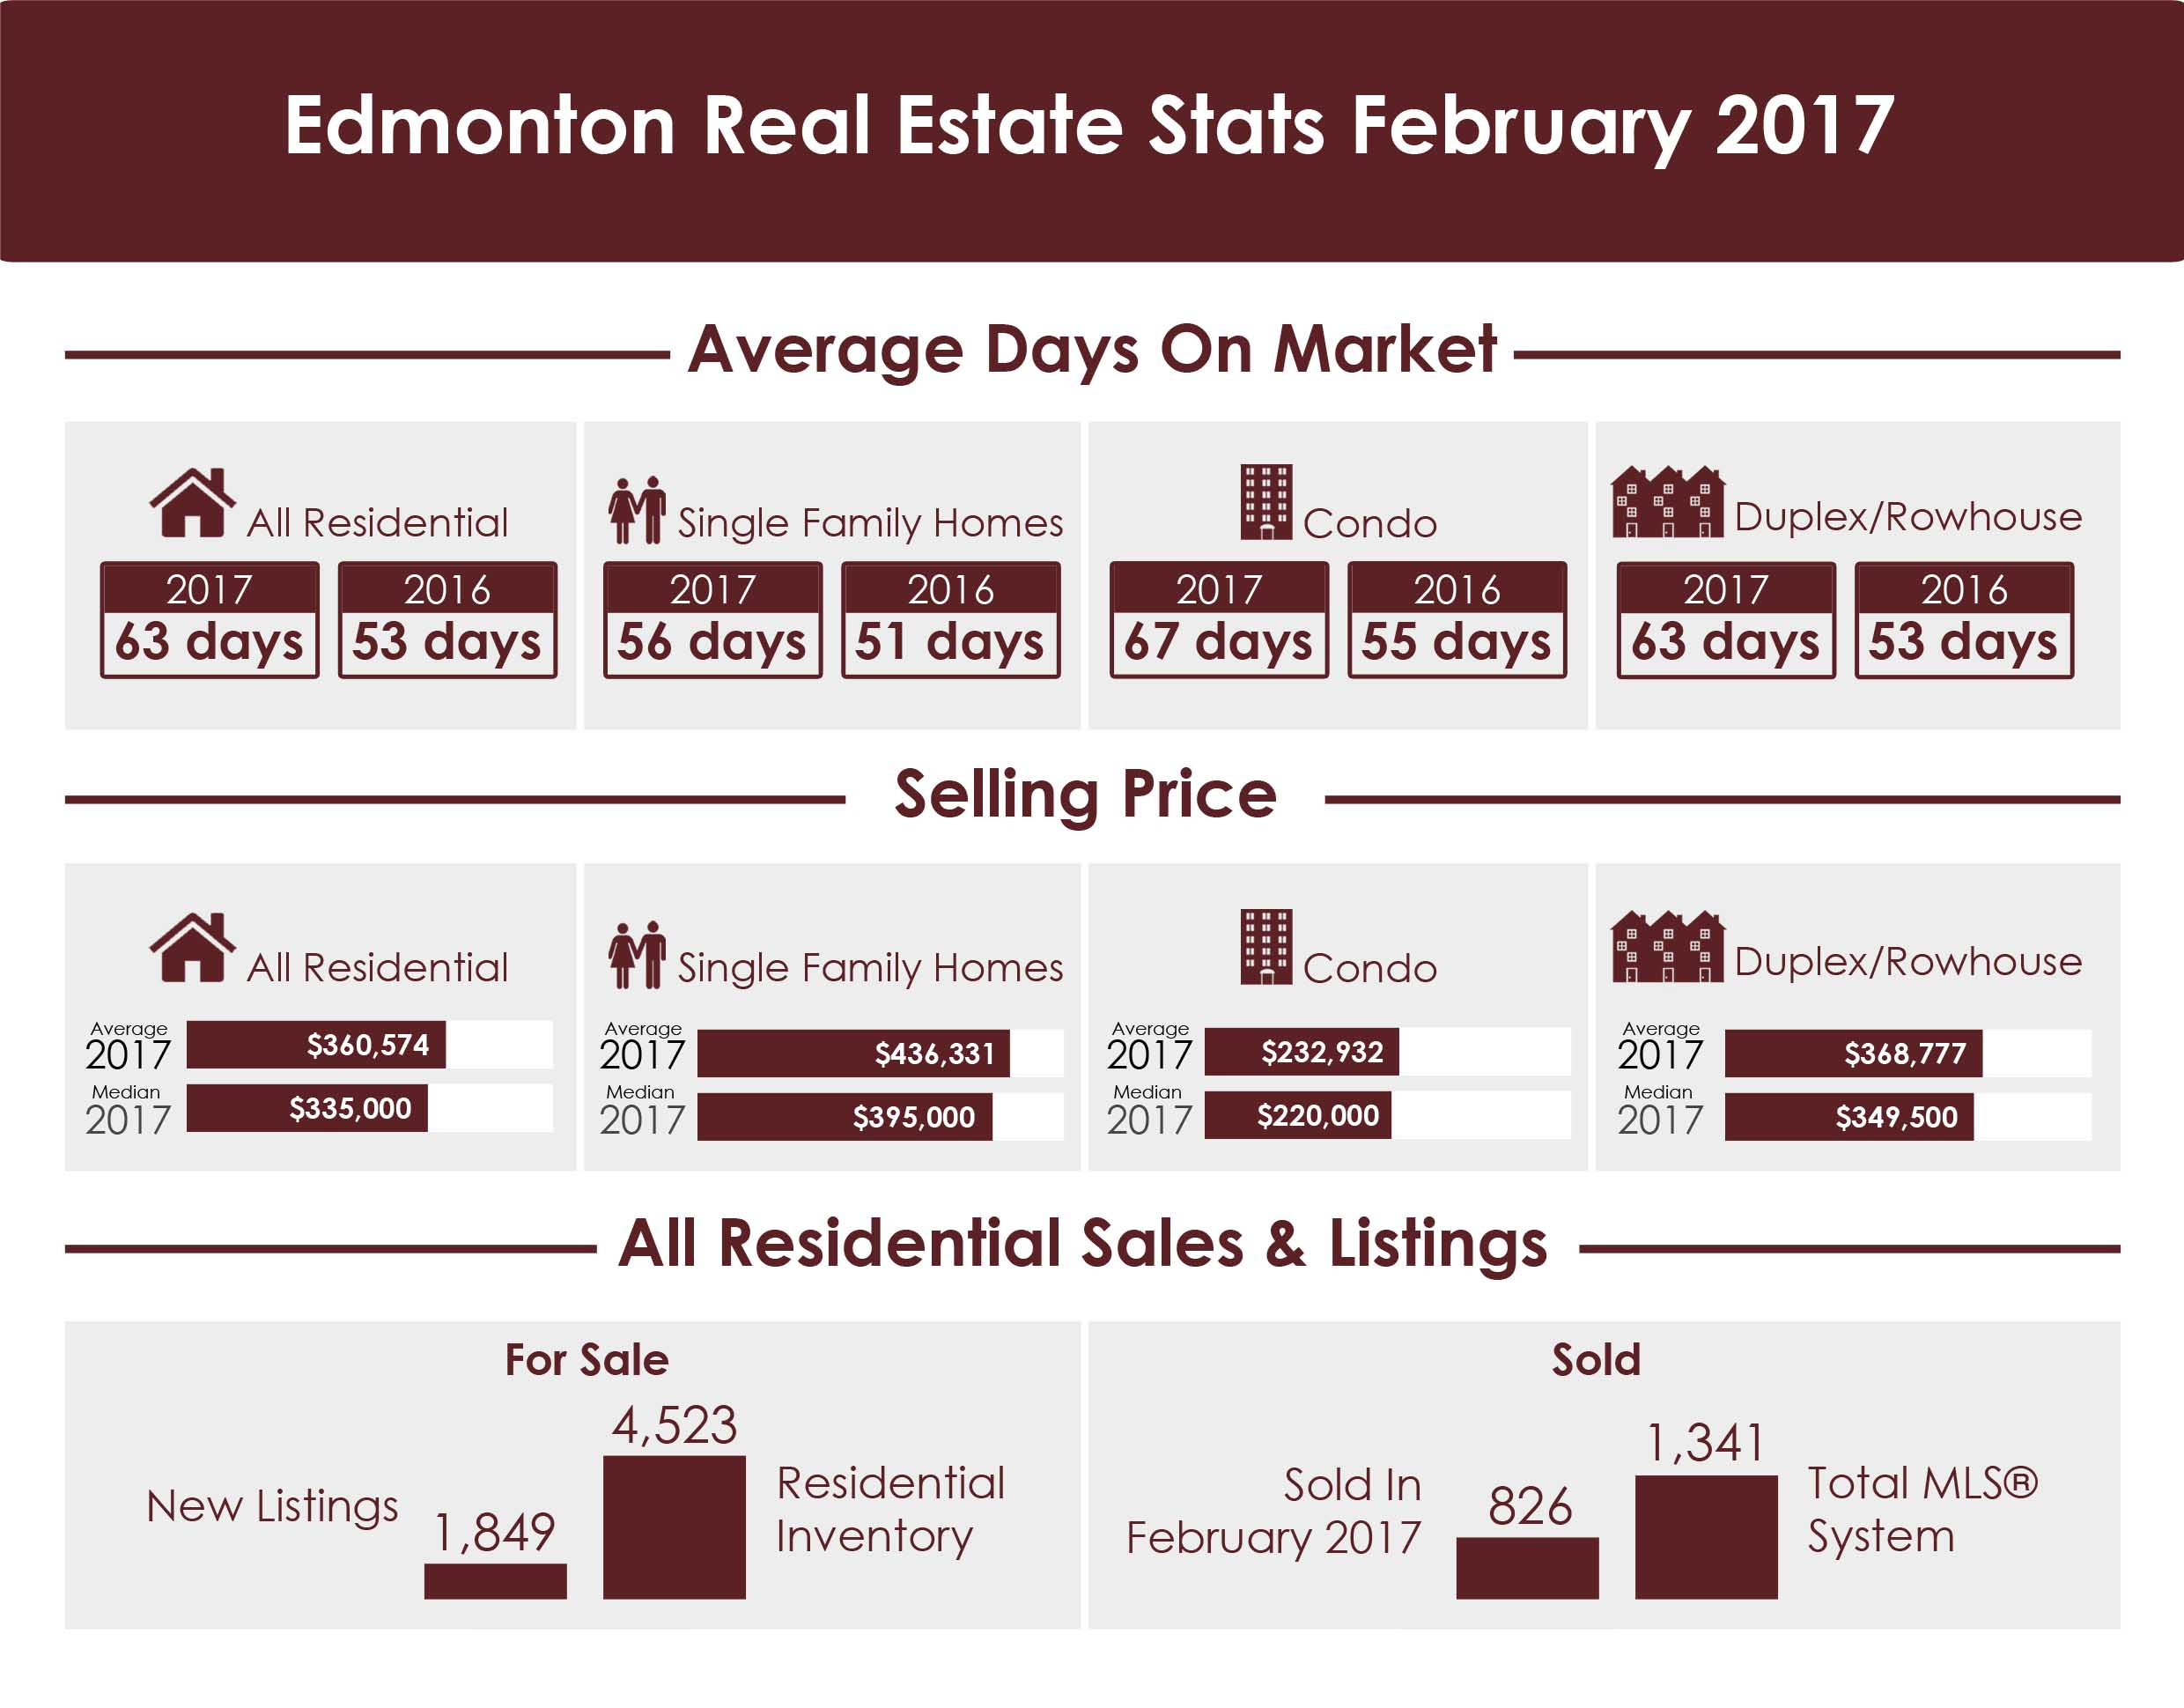 Edmonton Real Estate Stats February 2017